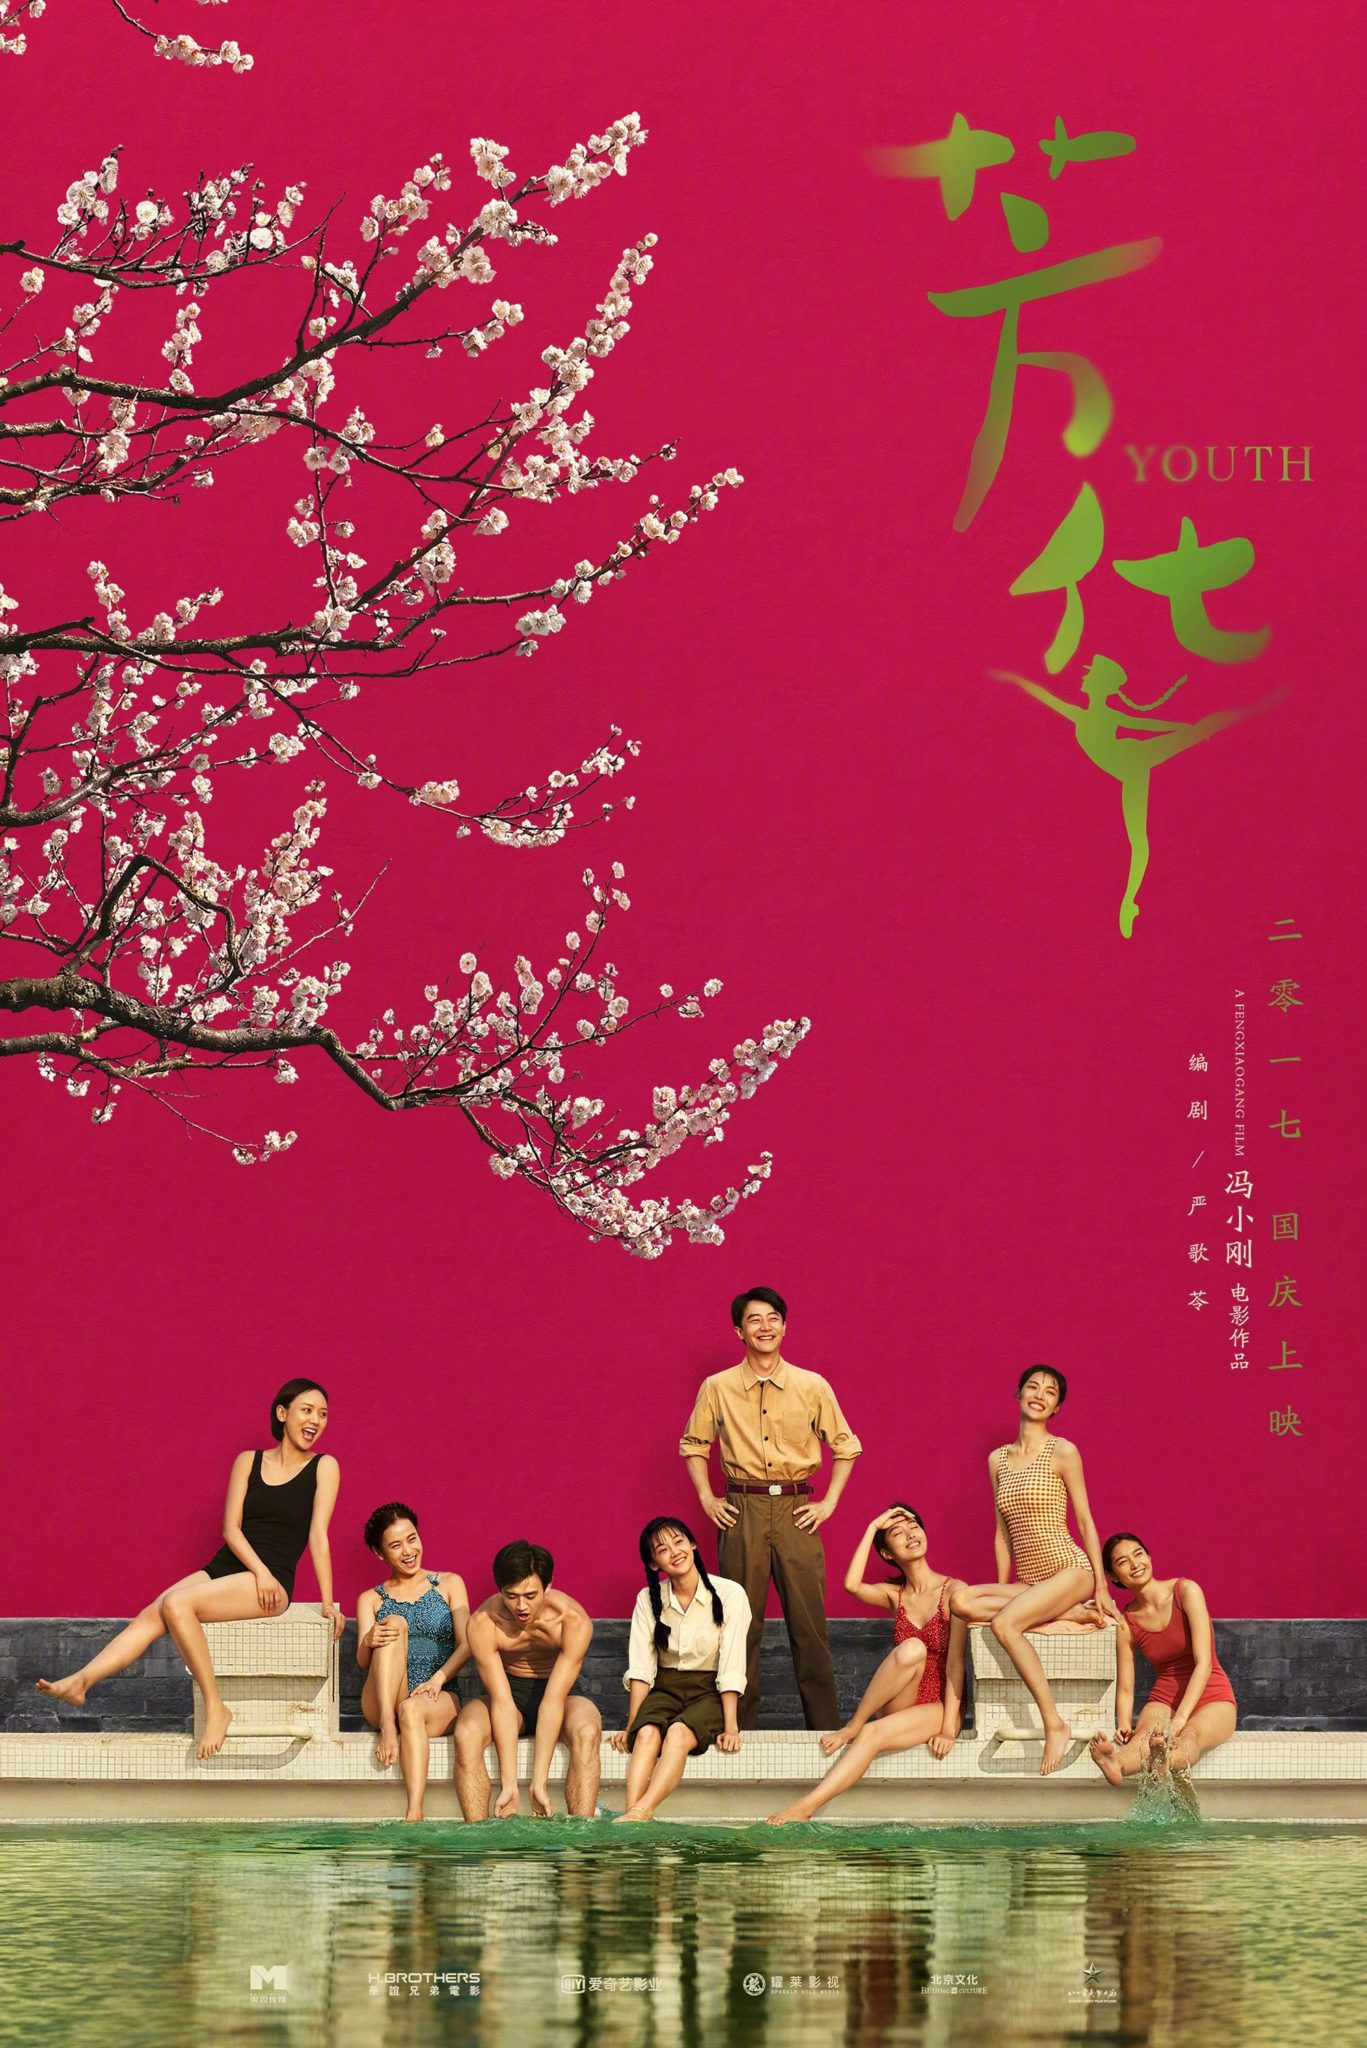 Youth by Feng Xiaogang